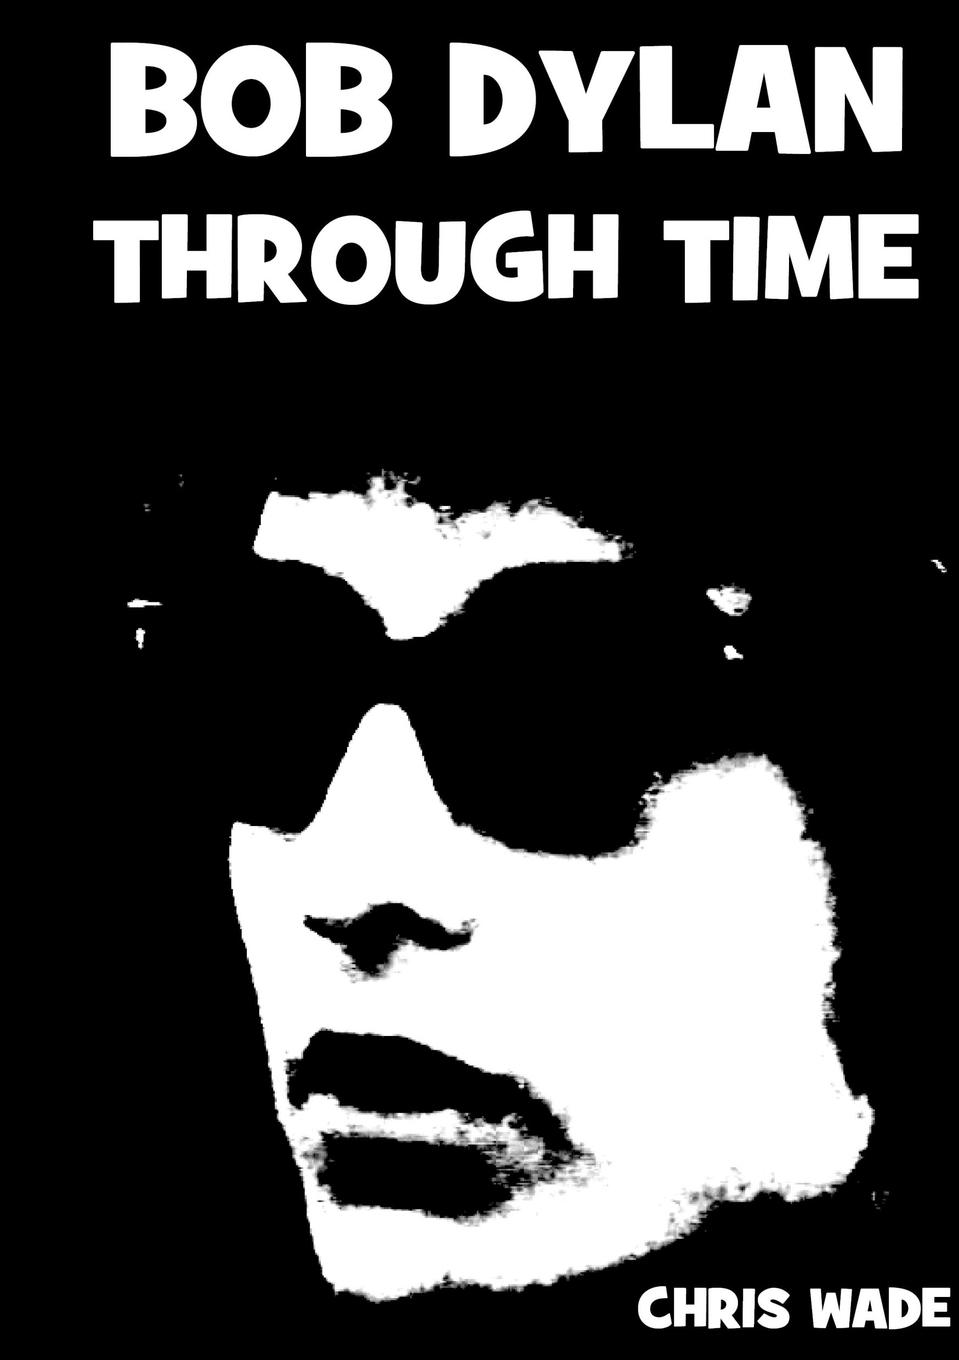 chris wade Bob Dylan Through Time ludwig dylan intentionality information and consciousness